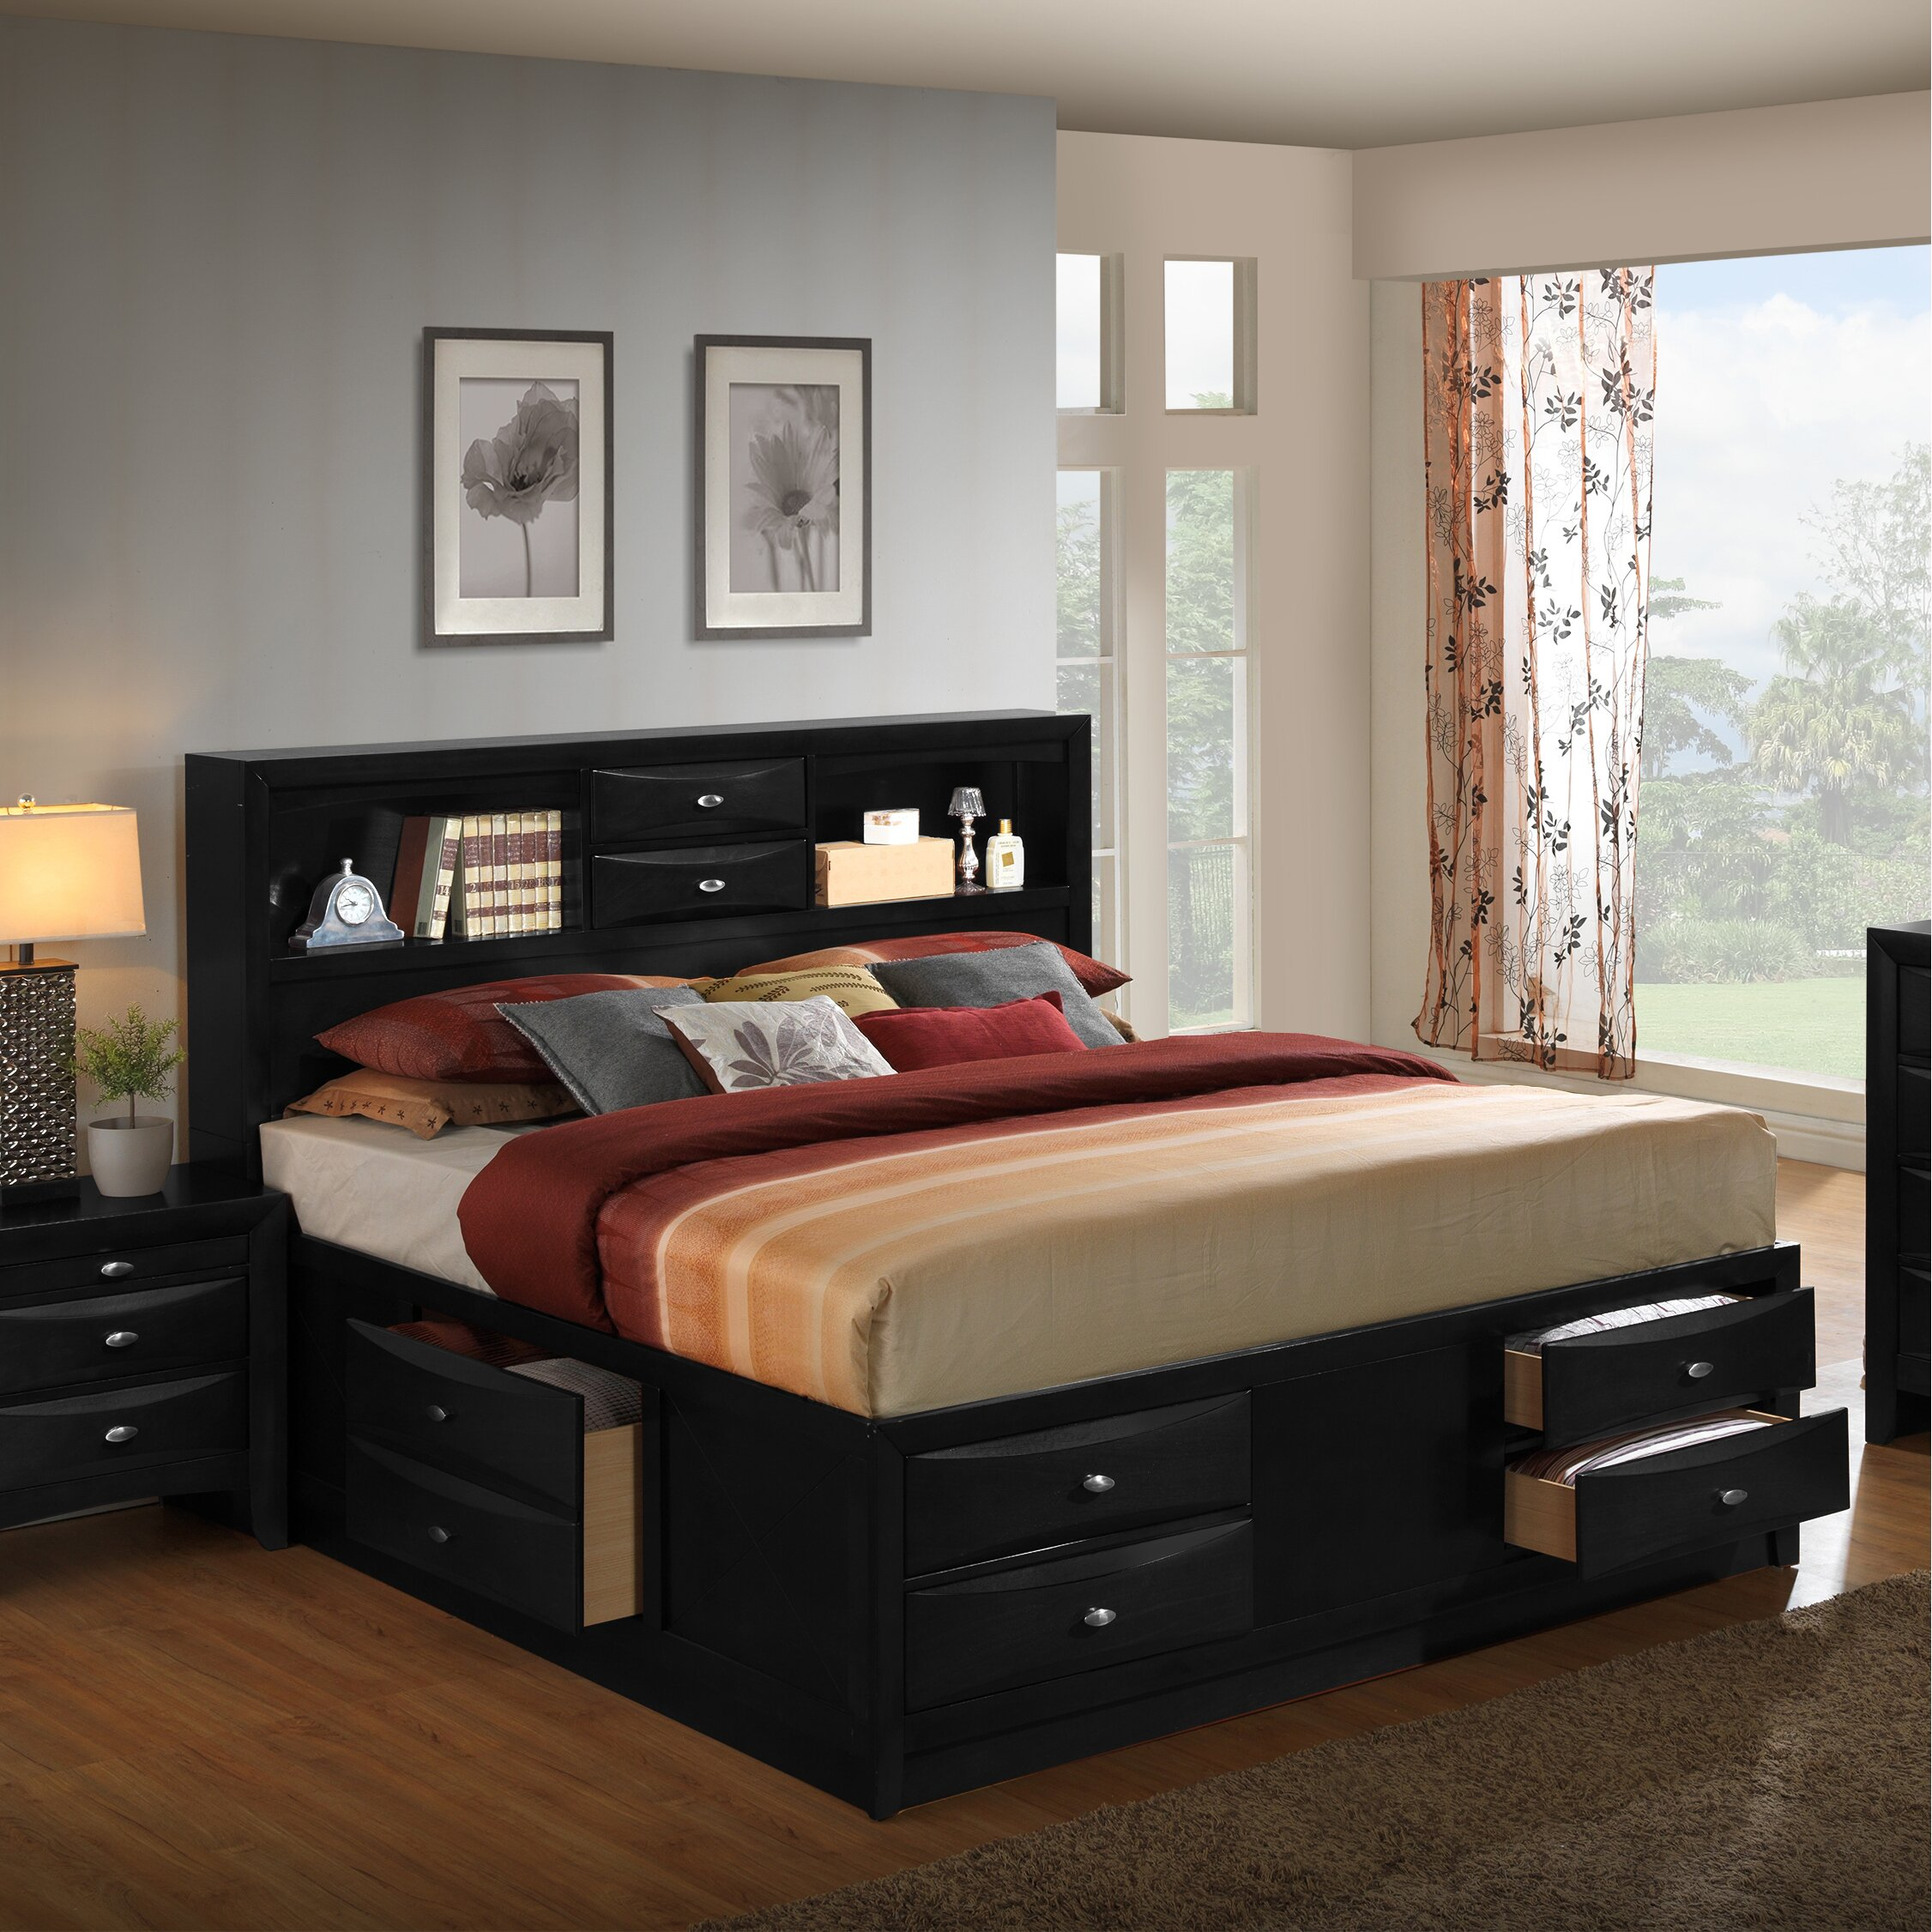 Roundhill furniture blemerey platform 6 piece bedroom set for Bedroom 6 piece set